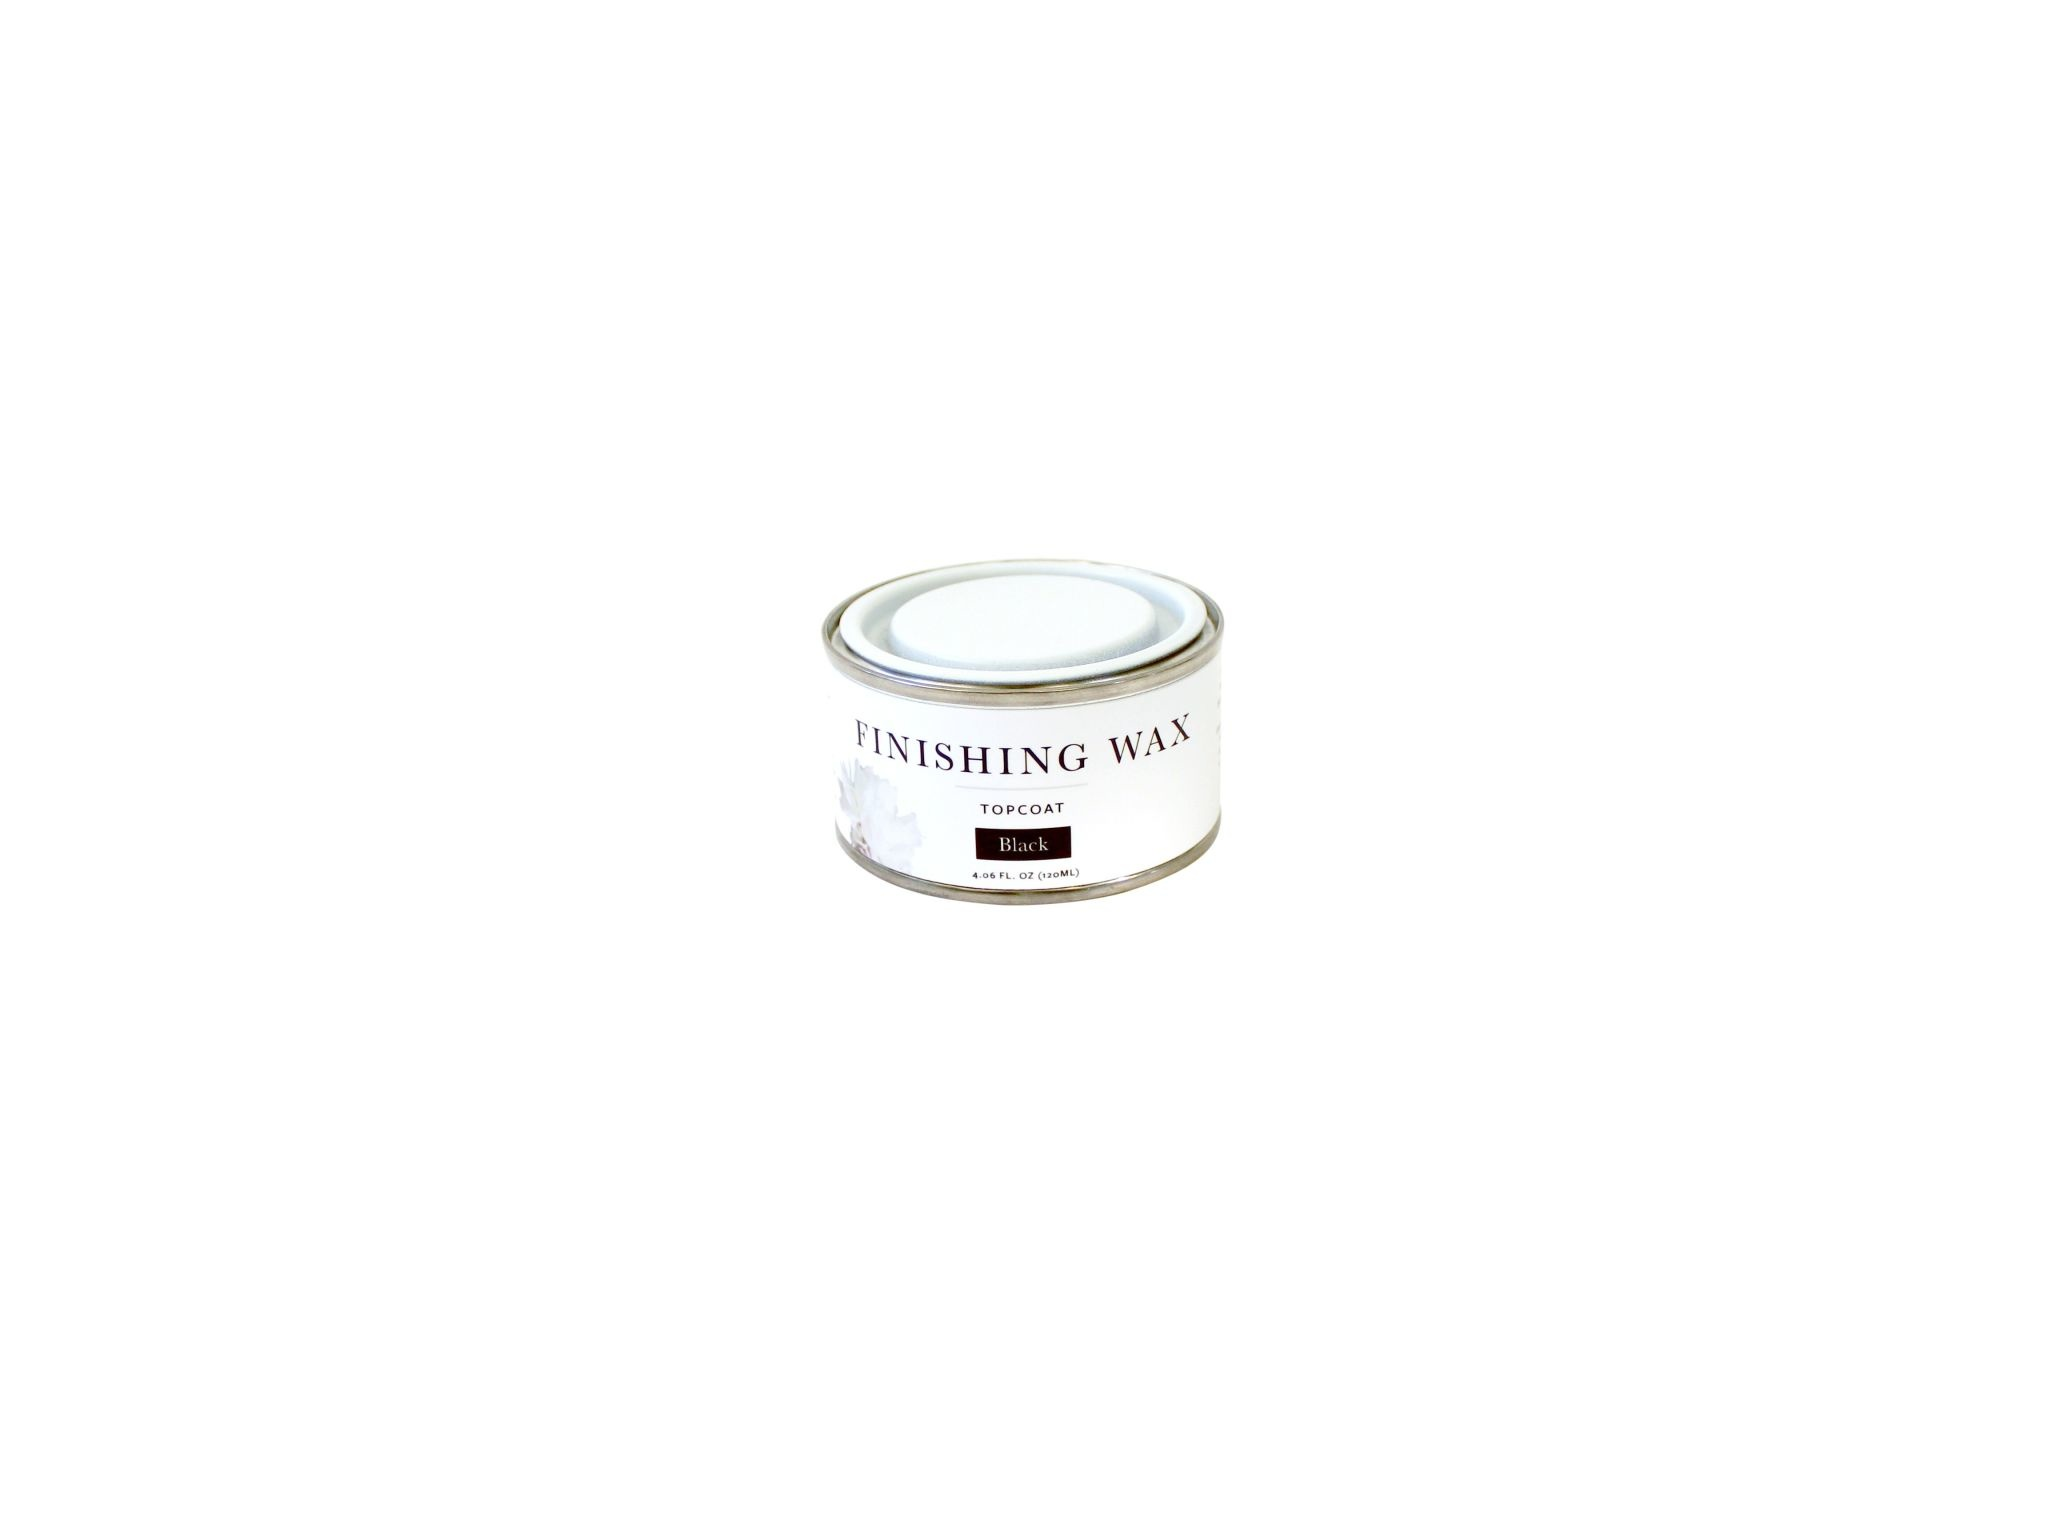 Jolie Home Black Finishing Wax